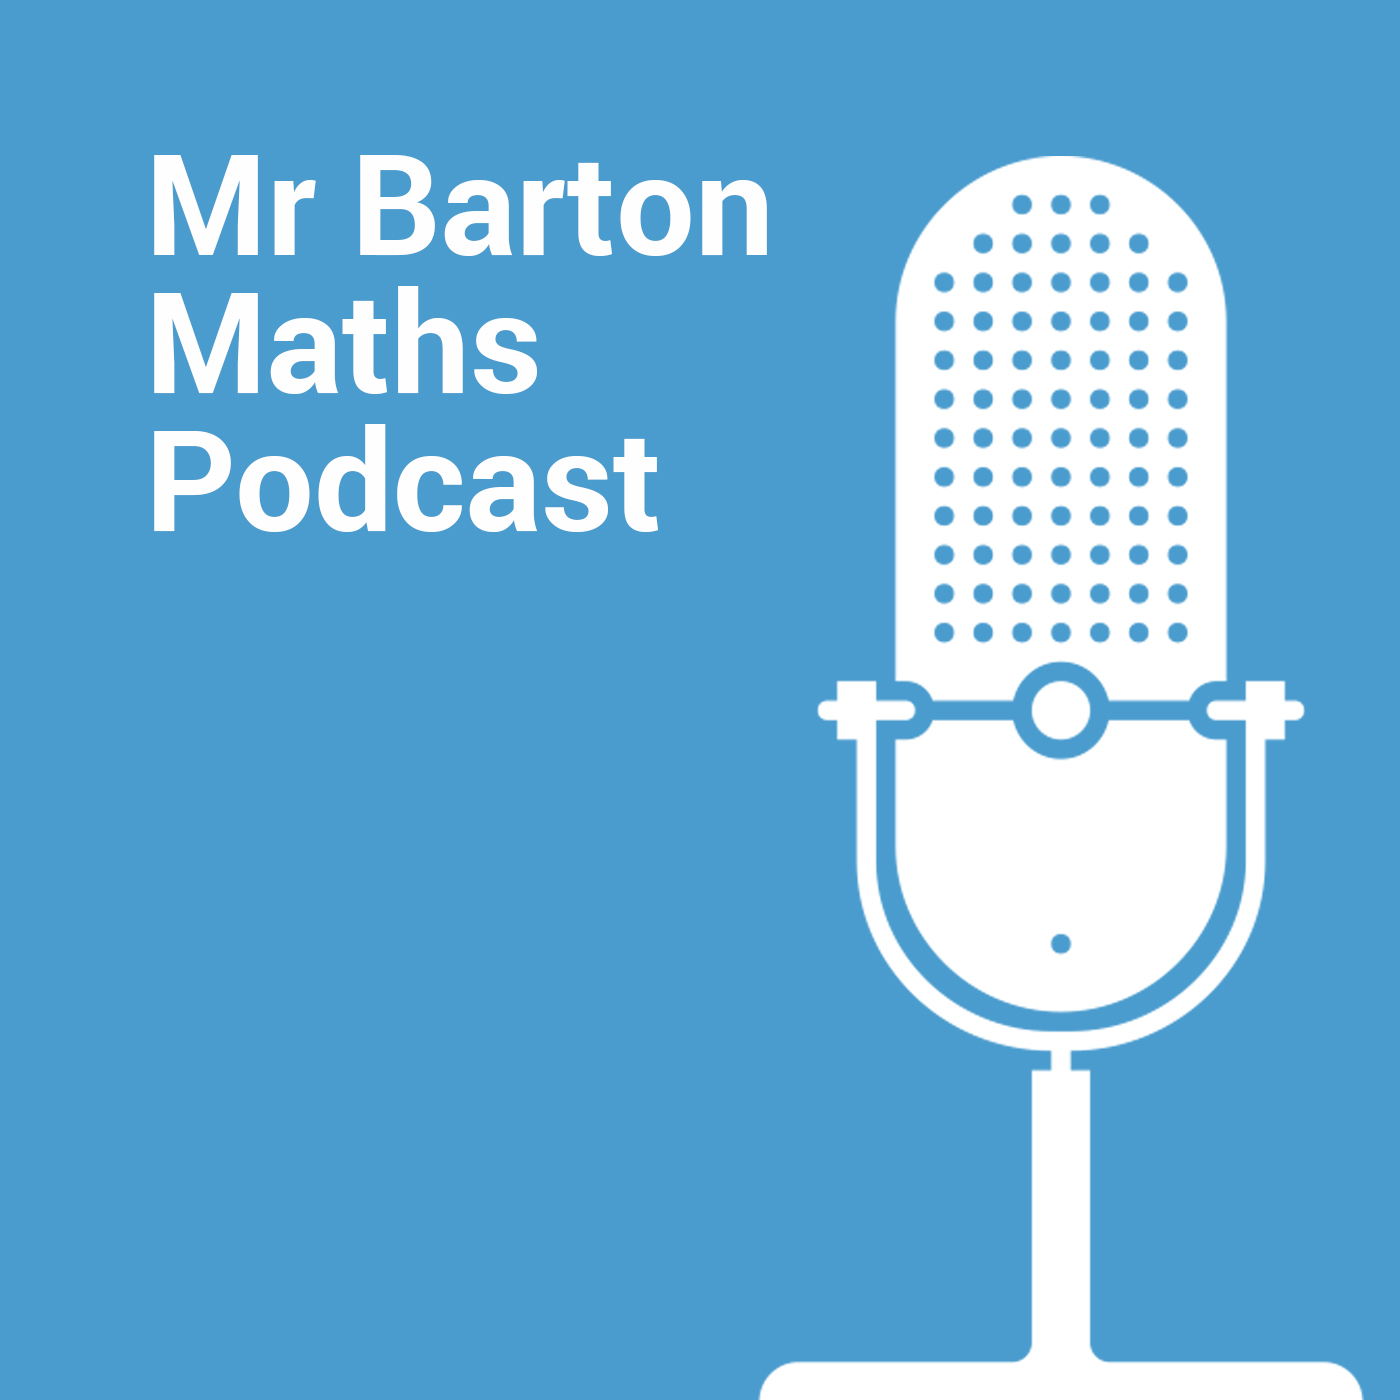 Teaching Maths Podcast Archives Mr Barton Maths Blog